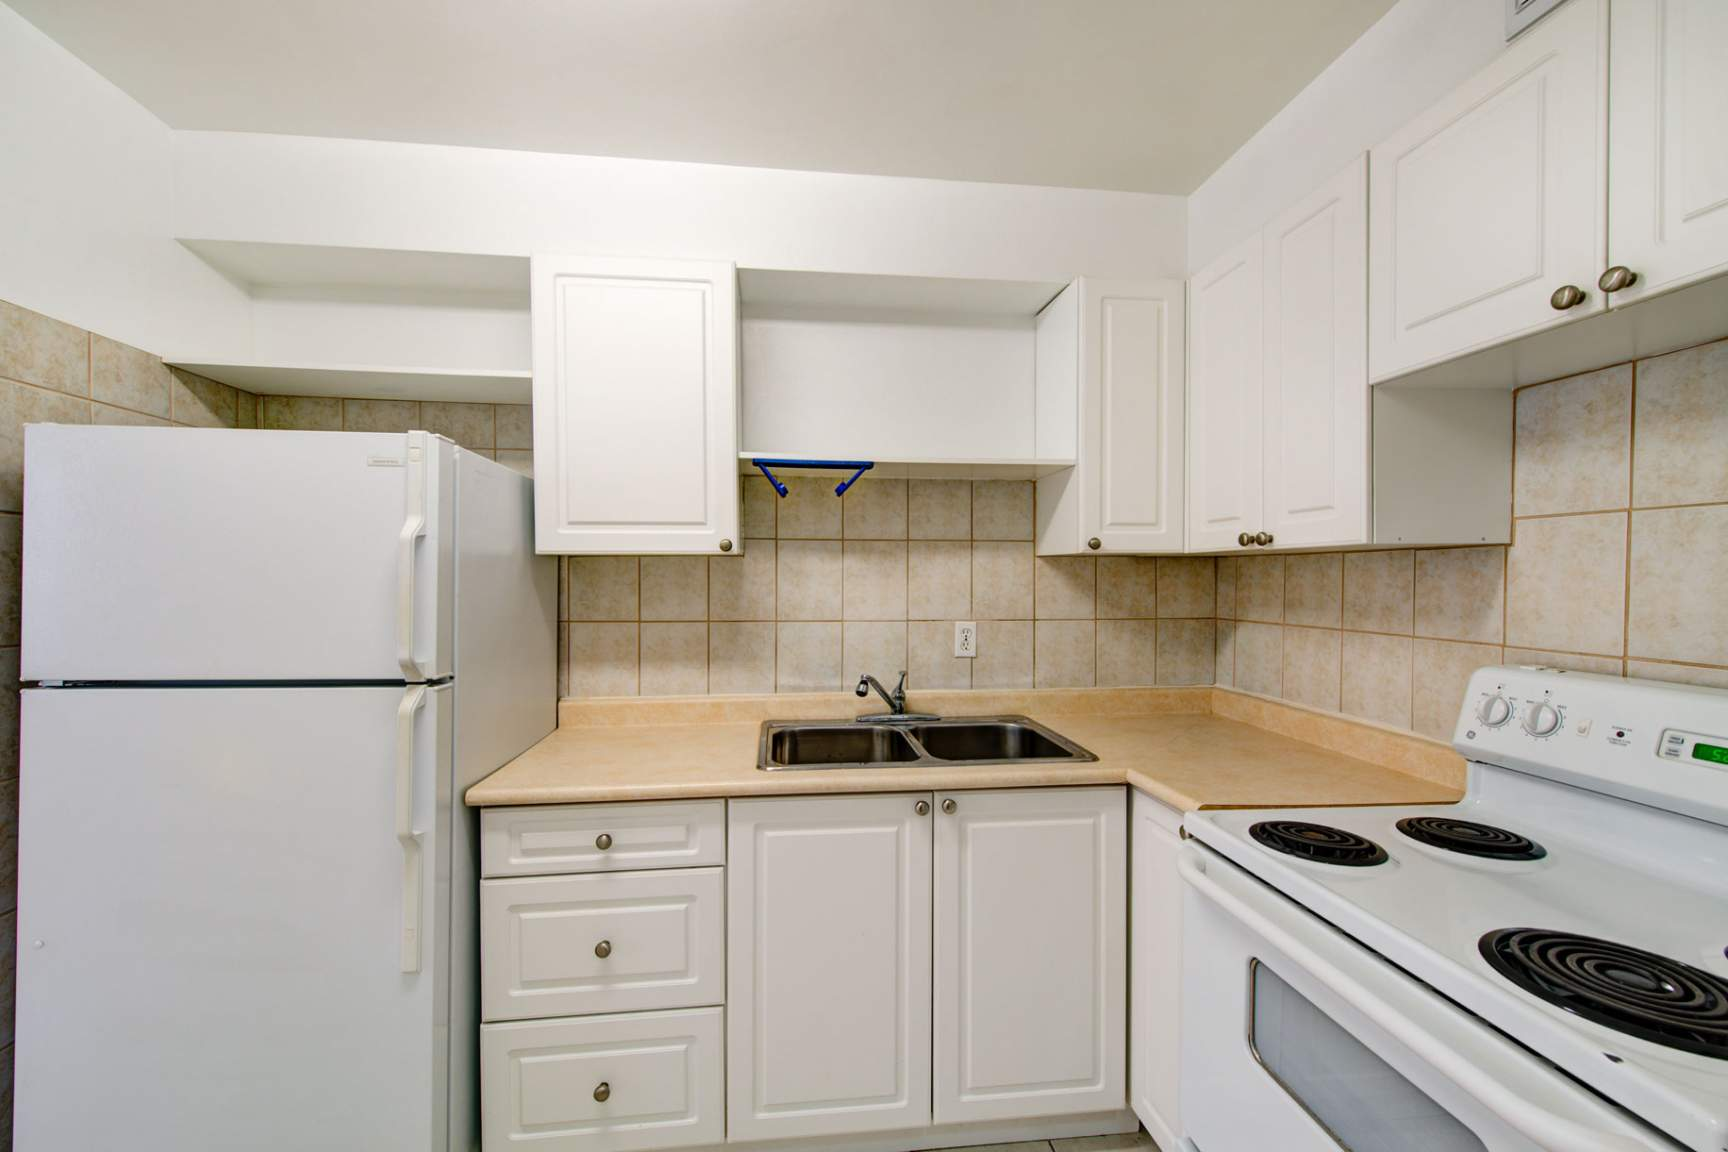 1 bedroom Apartments for rent in Toronto at Redpath Tower - Photo 12 - RentersPages – L138725